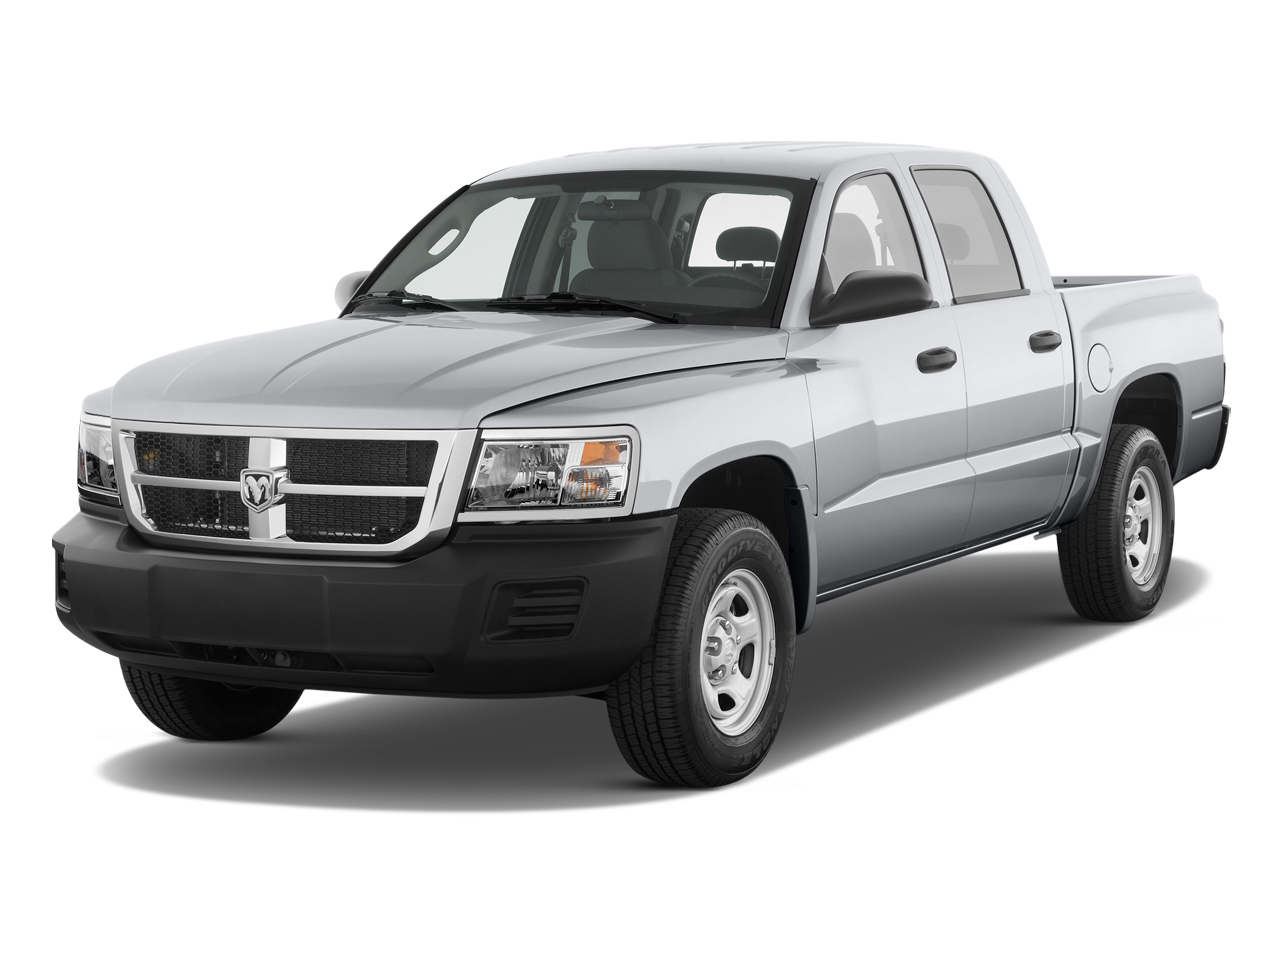 Ram Dakota Review Ratings Specs Prices And Photos The Car Connection